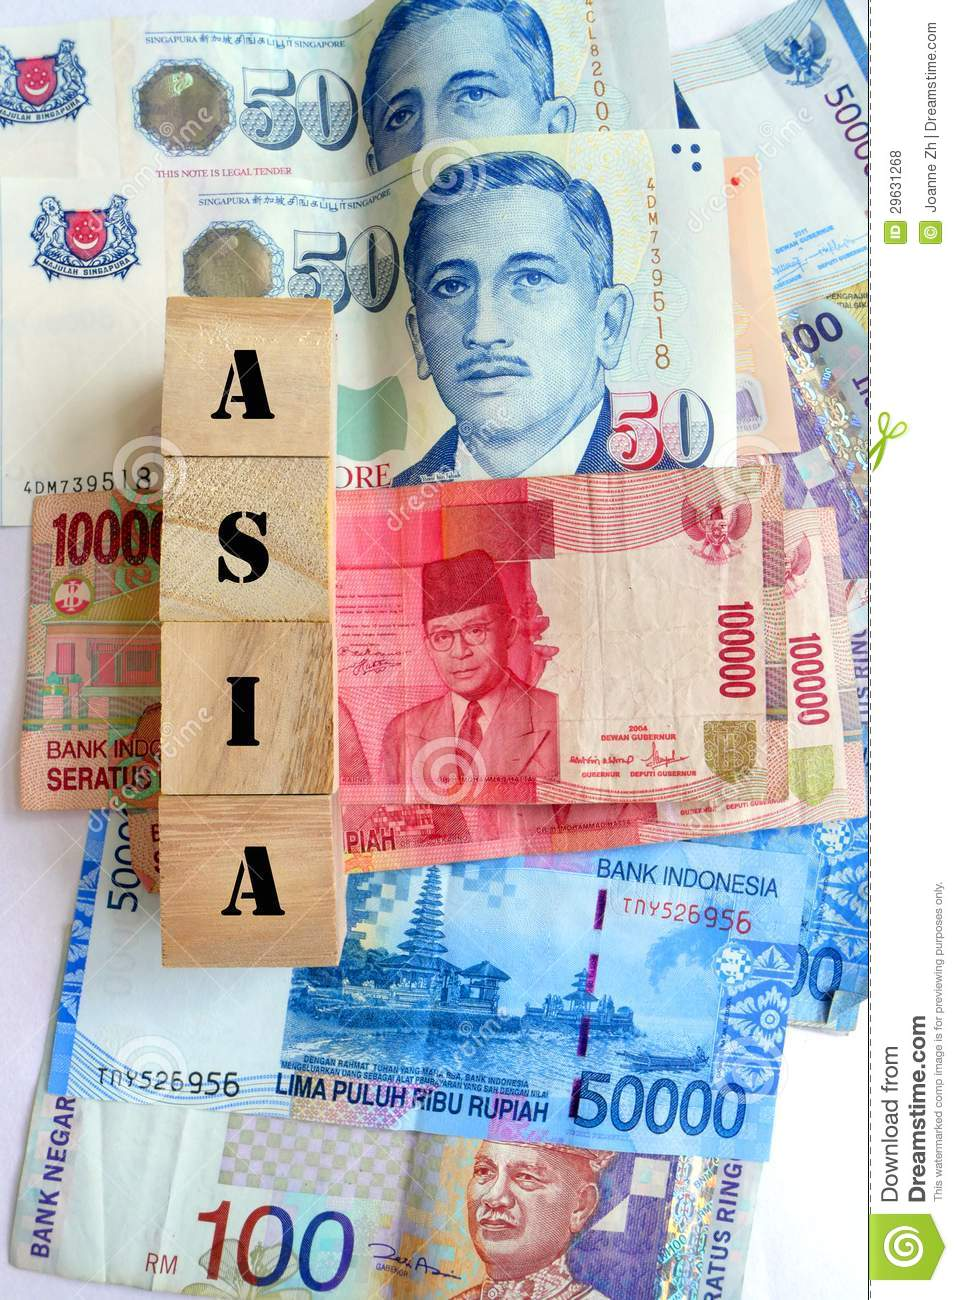 Money in asian currencies stock photo image of dollars 29631268 money in asian currencies biocorpaavc